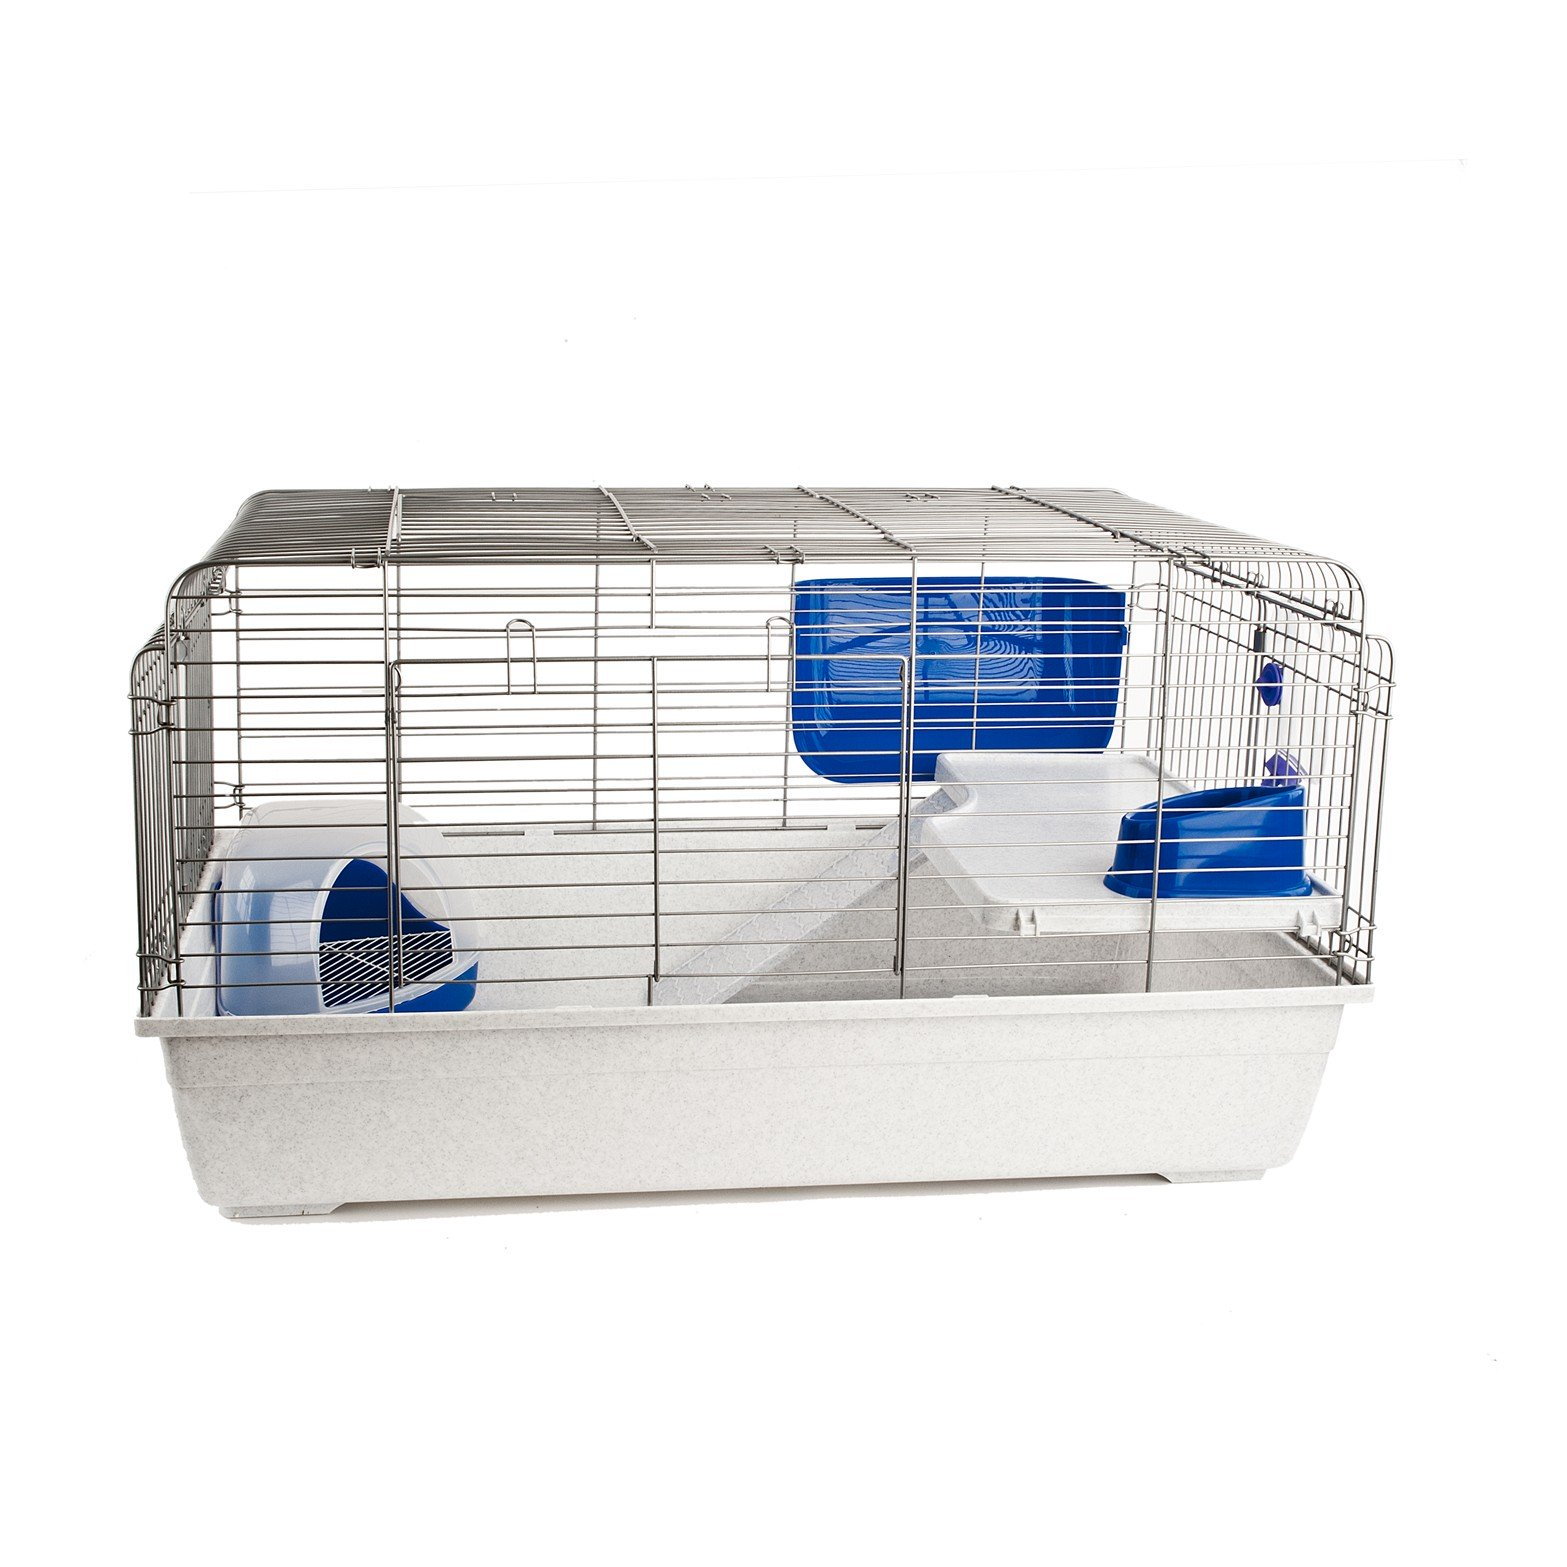 Roger R4 100cm Rabbit And Guinea Pig Cage